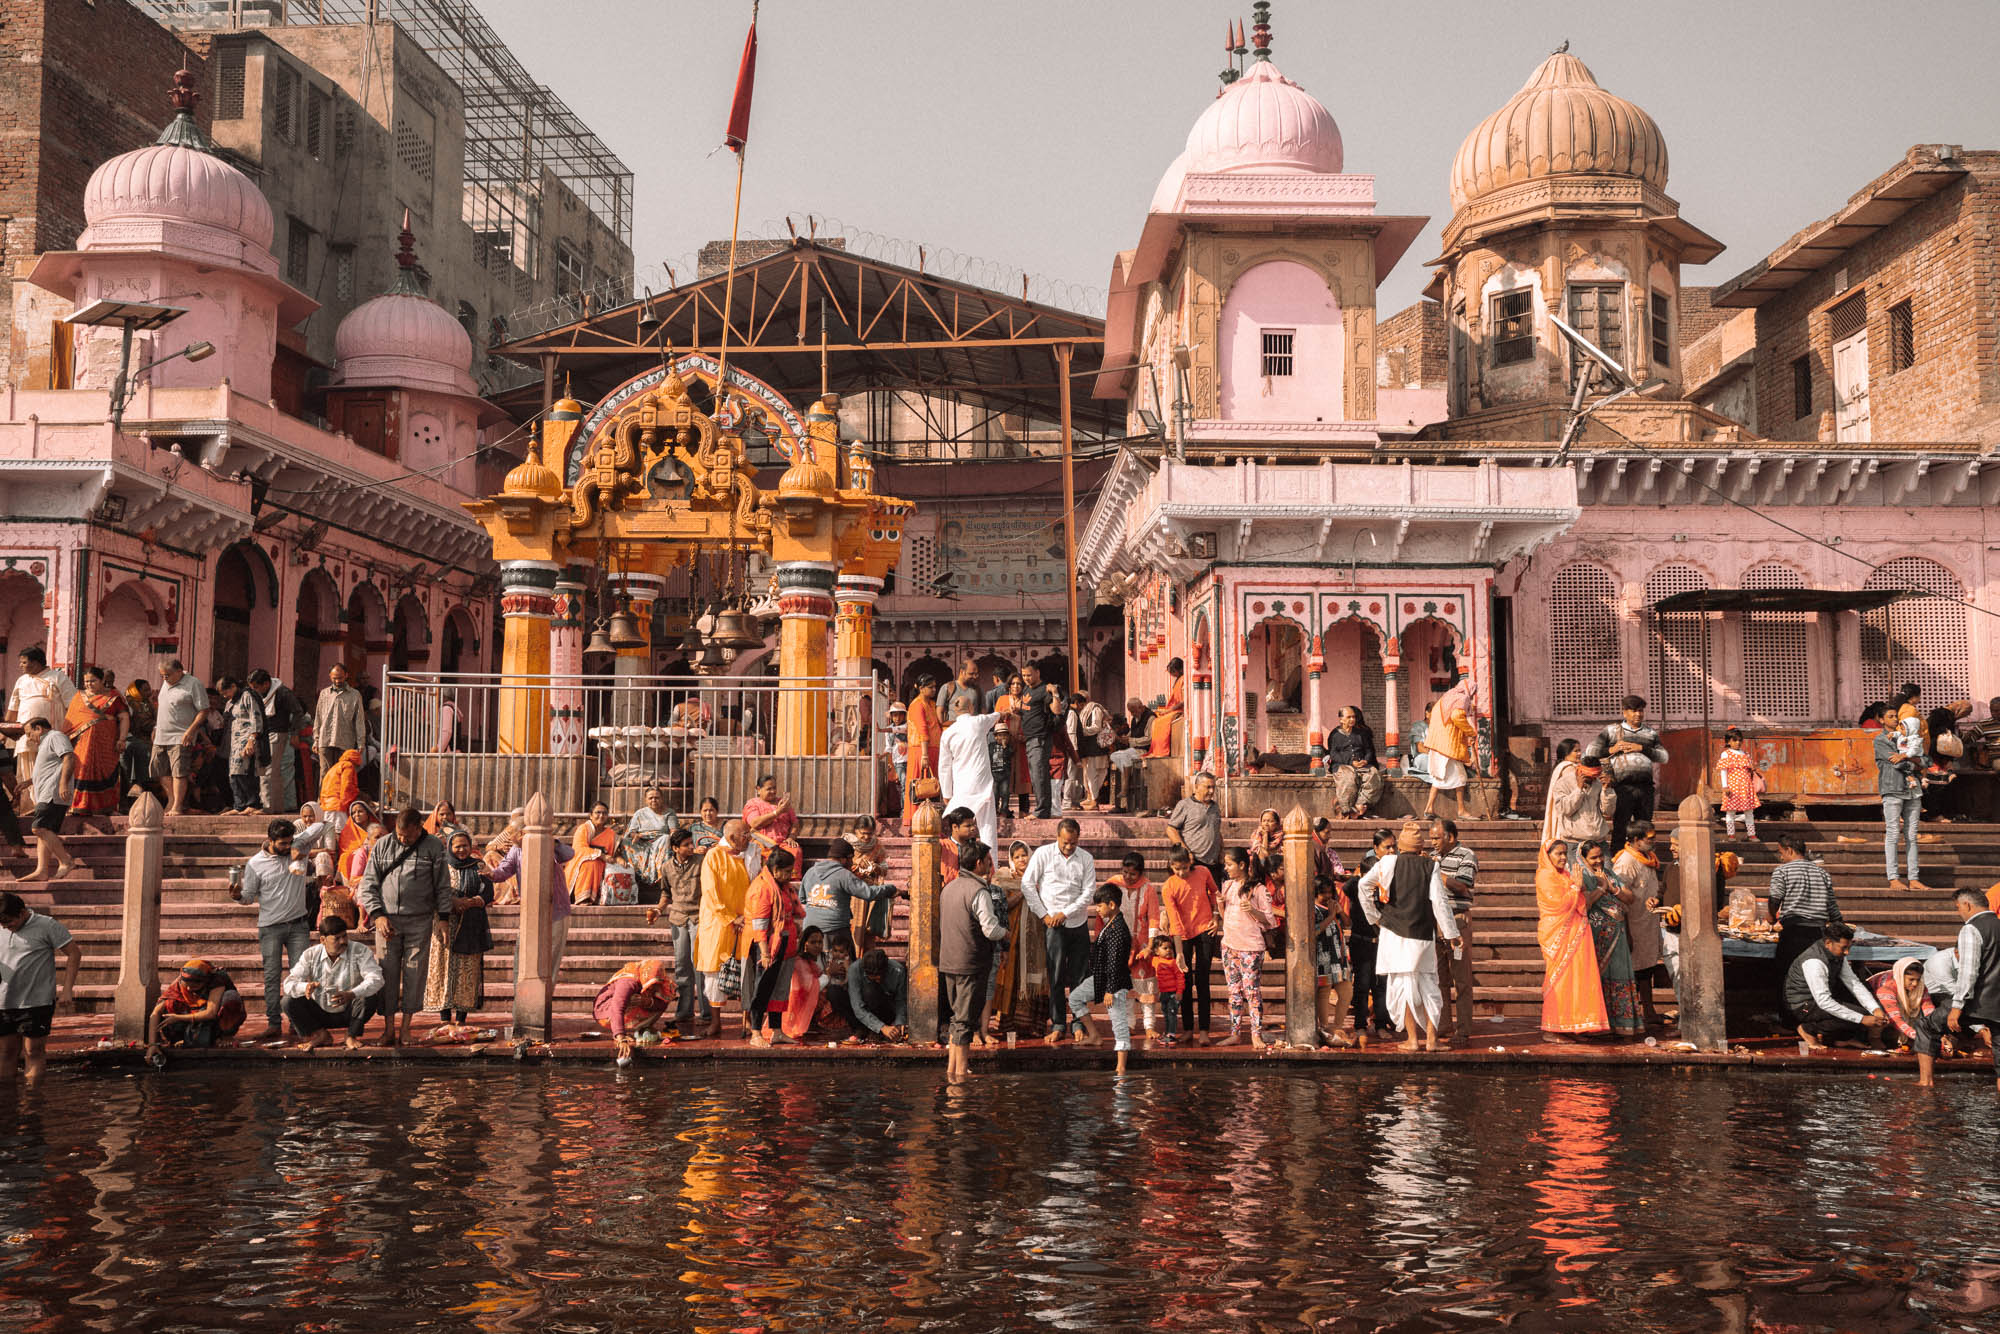 View of Mathura, India riverbank during Holi festival via @finduslost